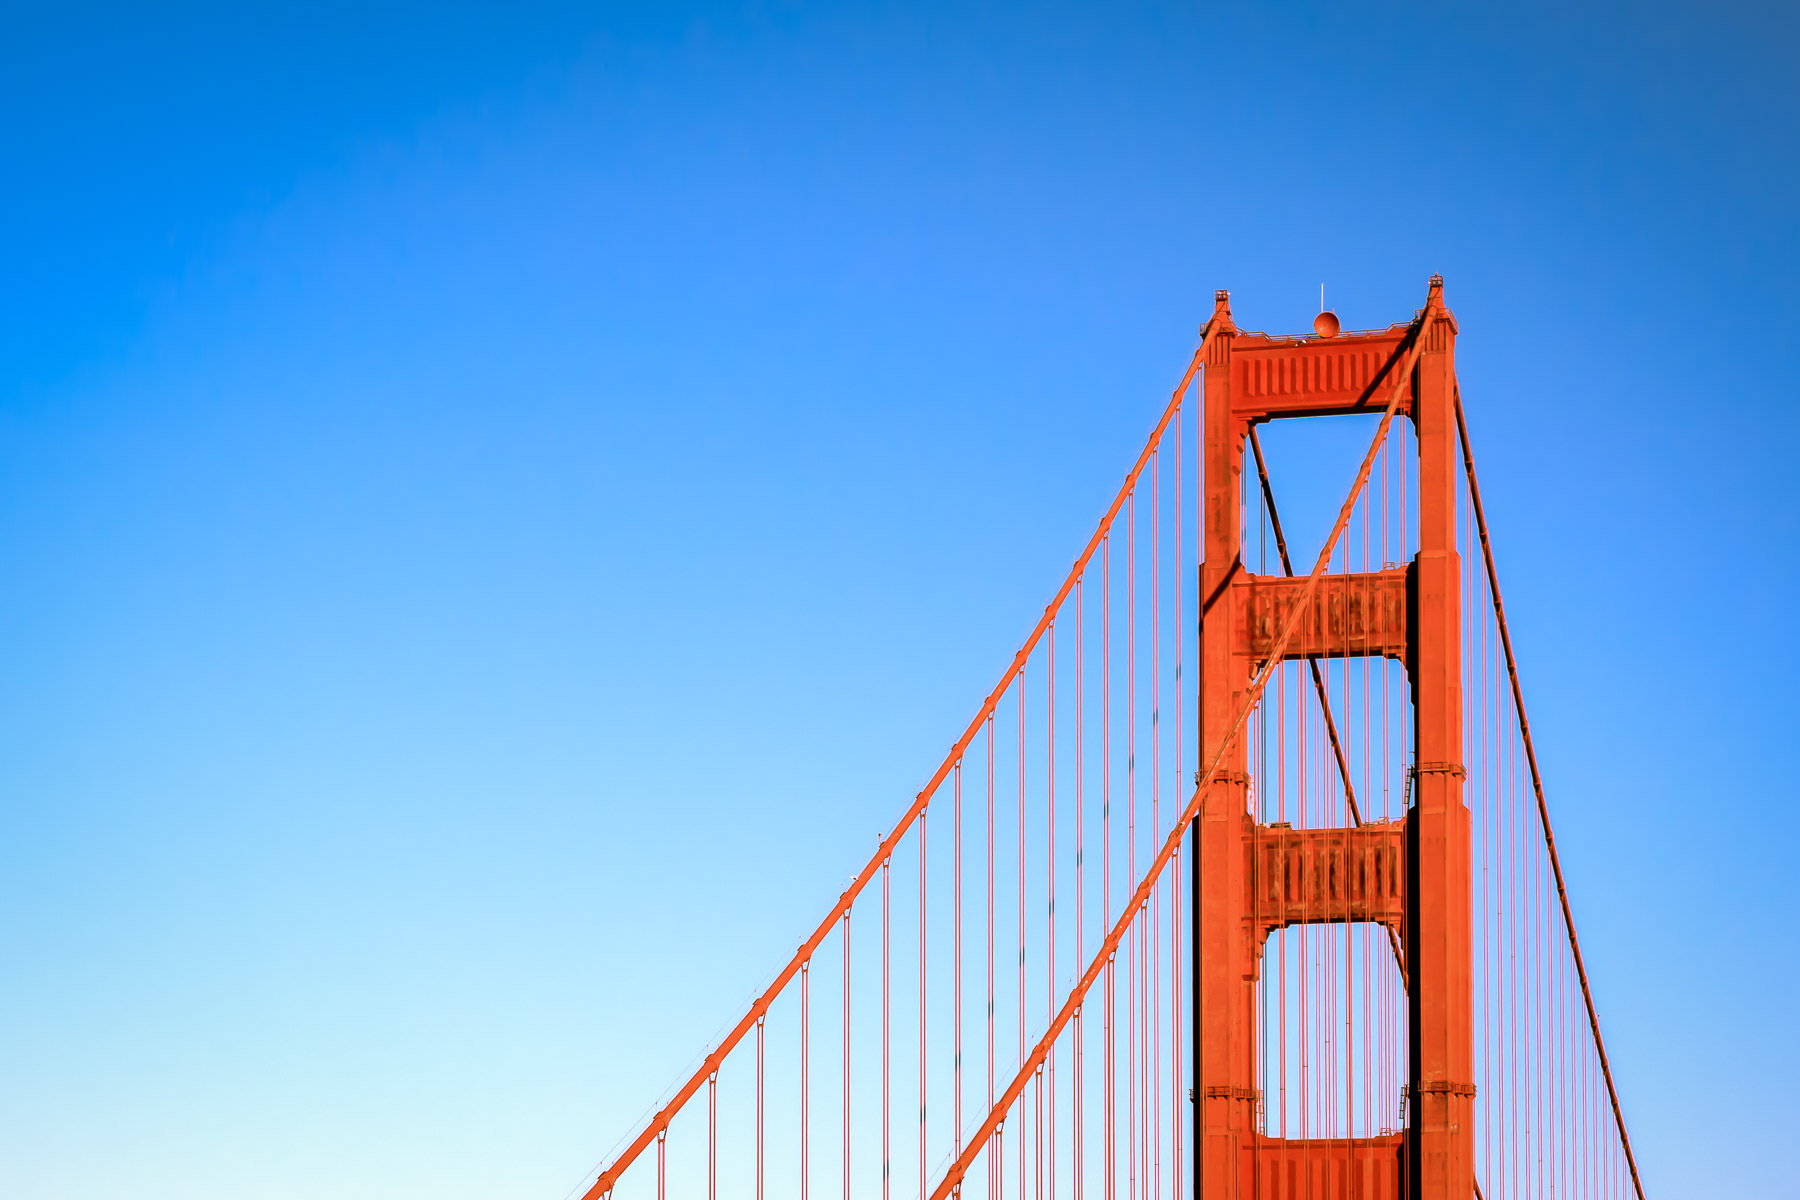 The south tower of San Francisco's iconic Golden Gate Bridge rises into the blue sky over San Francisco Bay.